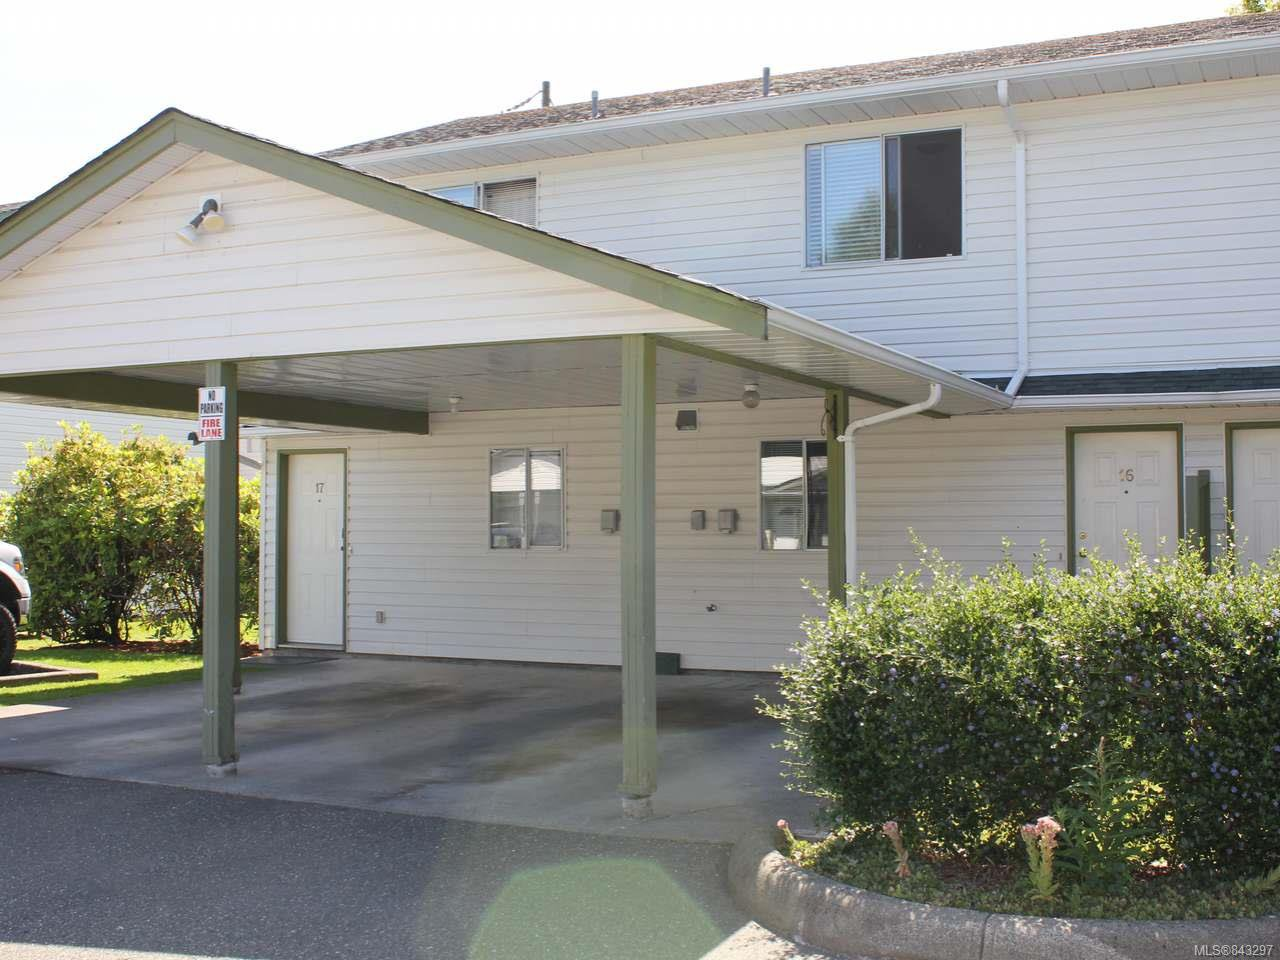 Main Photo: 16 1095 EDGETT ROAD in COURTENAY: CV Courtenay City Row/Townhouse for sale (Comox Valley)  : MLS®# 843297